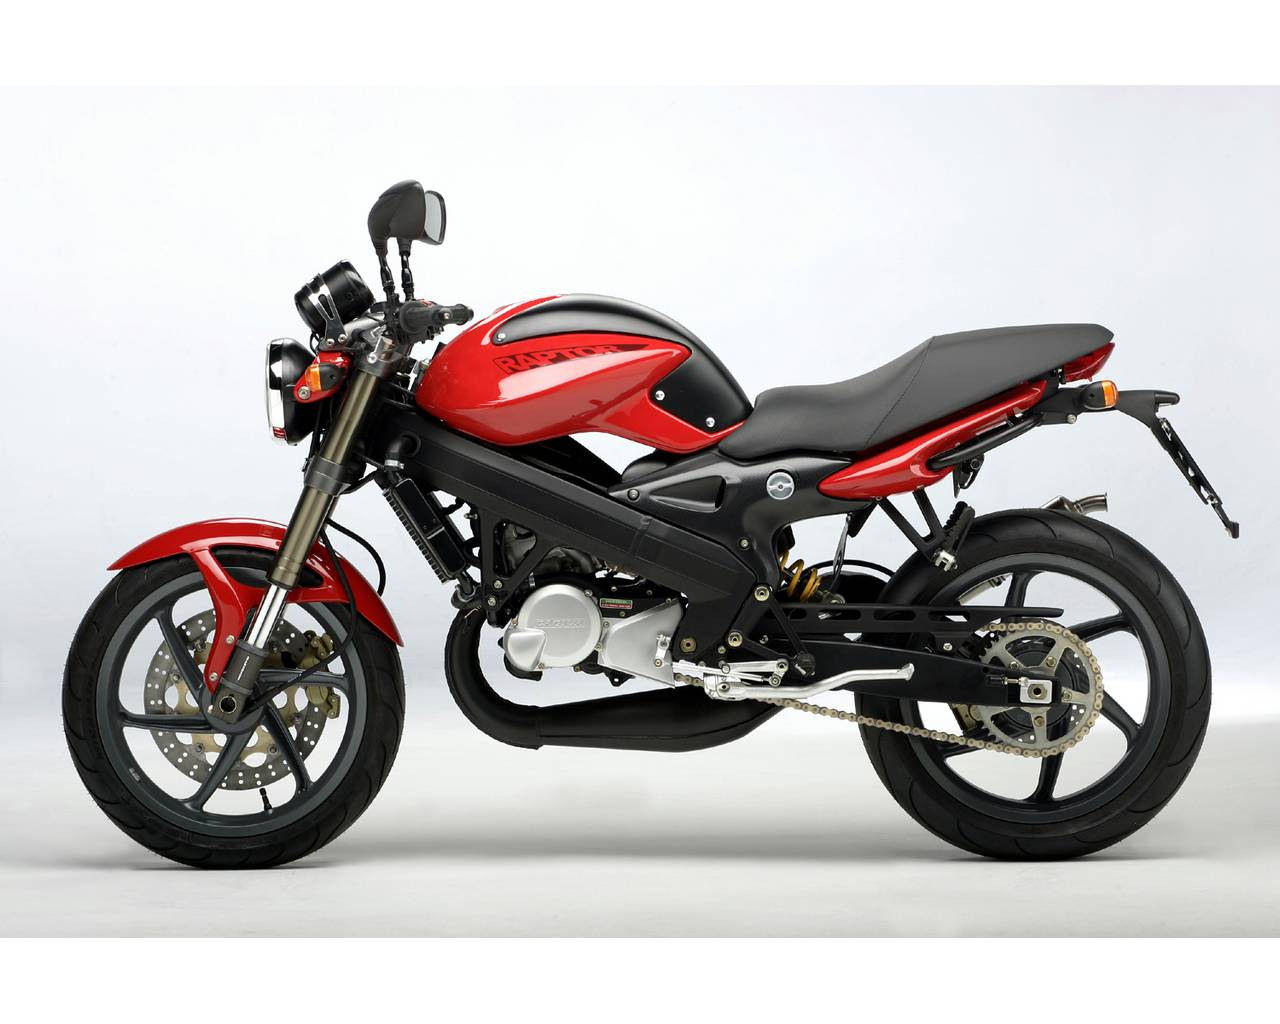 Cagiva Planet 125 2001 images #69652